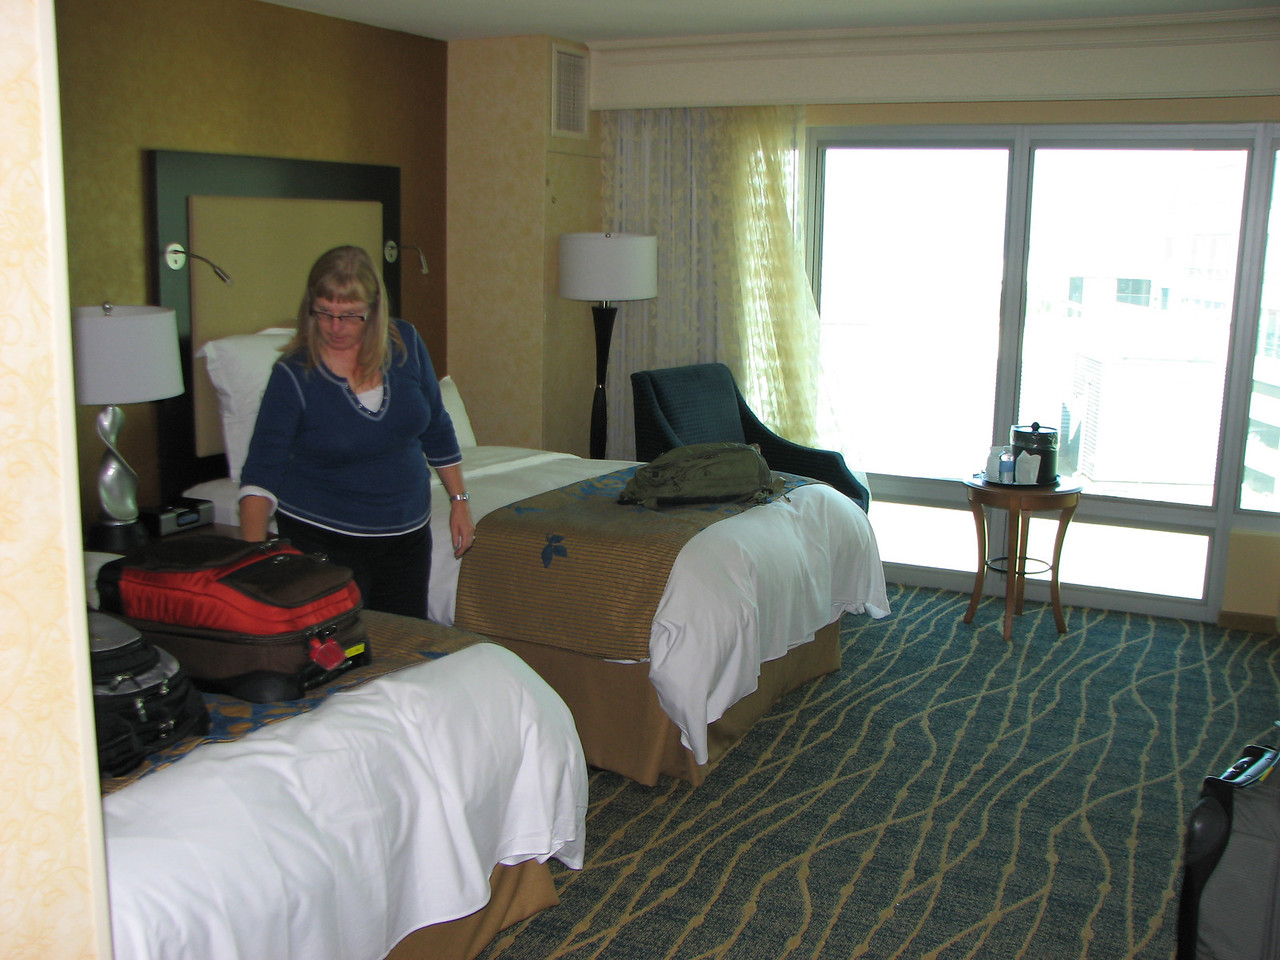 Our first Hotel night at the Seattle Marriot.